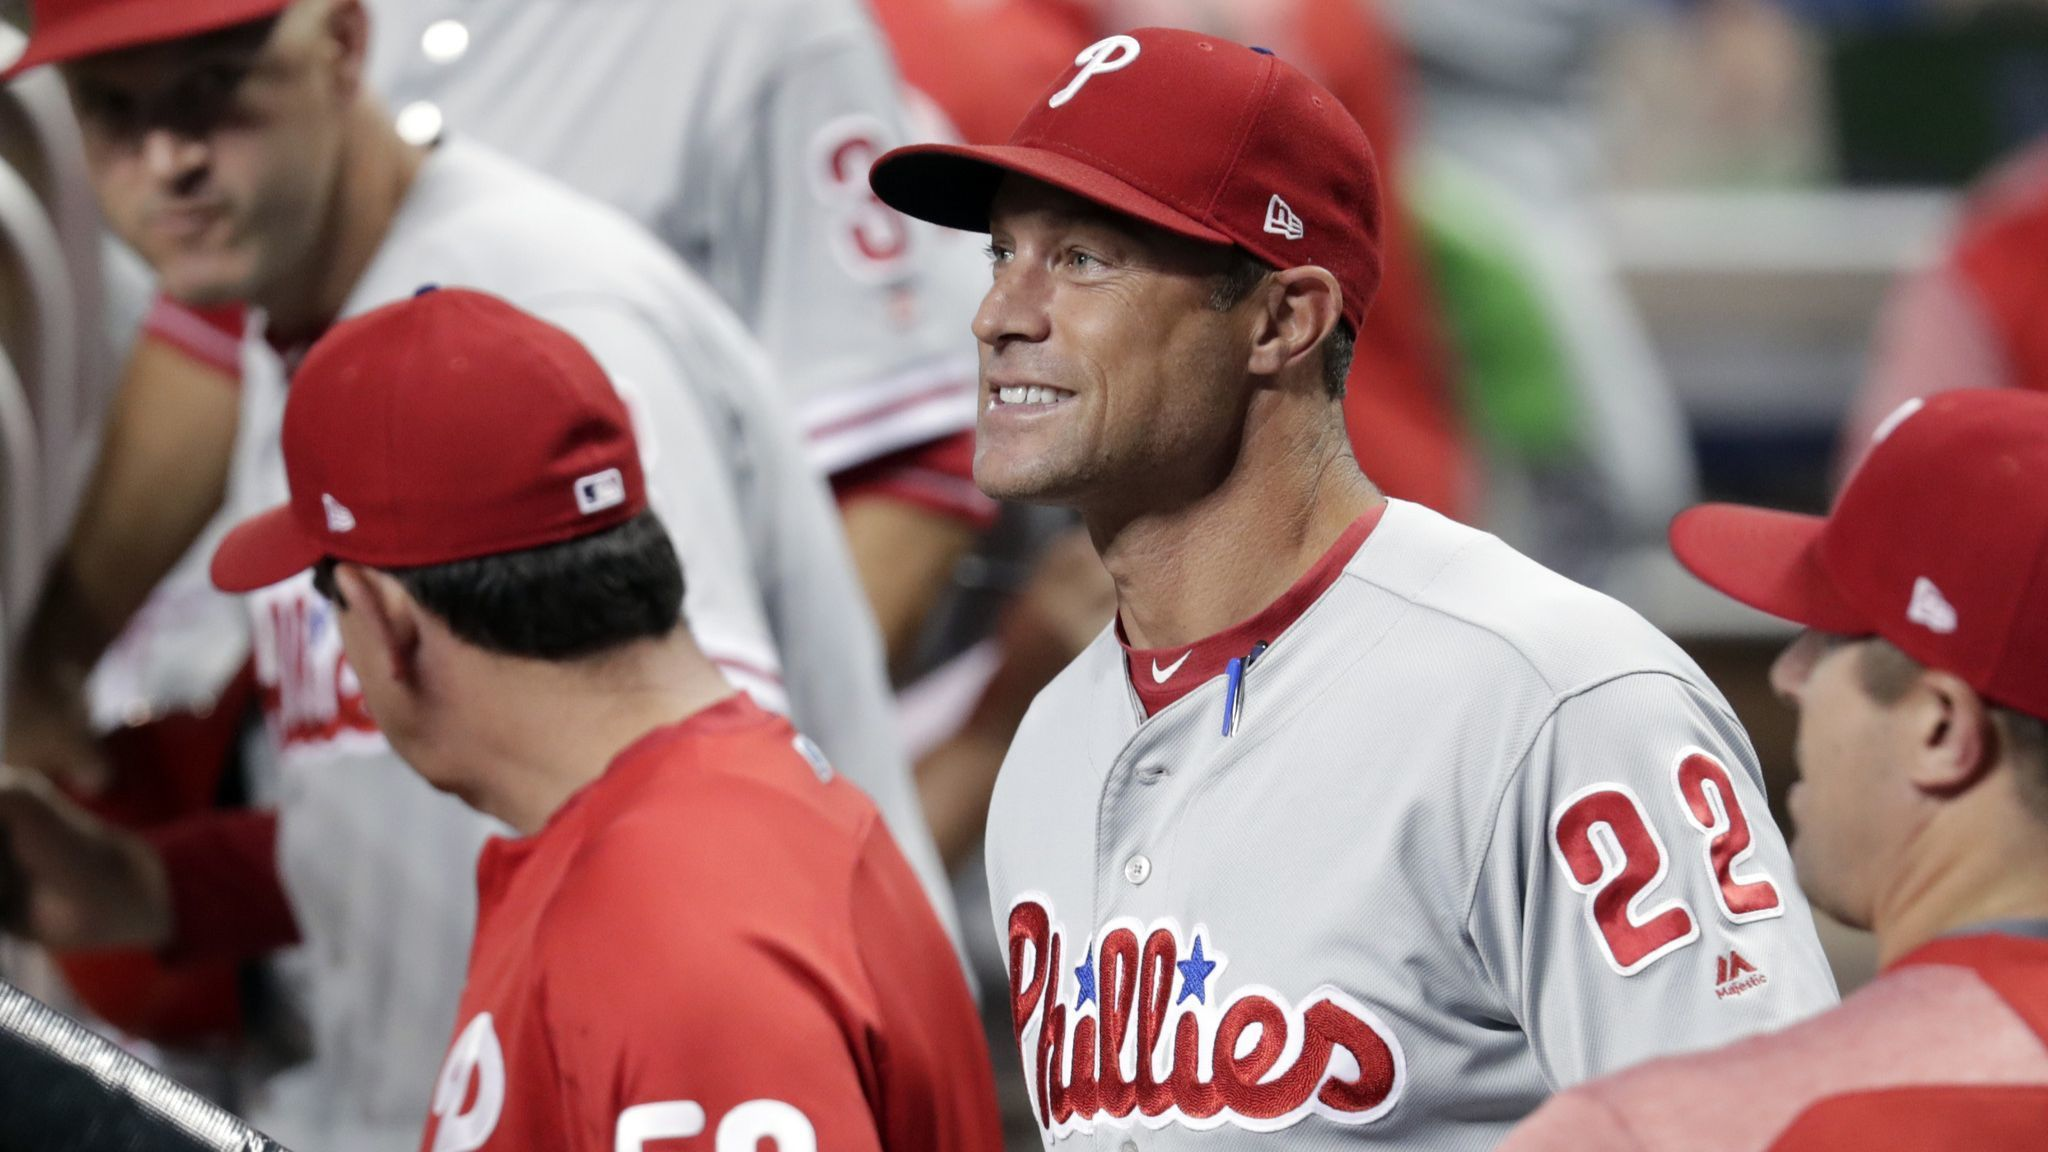 Phillies manager Gabe Kapler loses home in California wildfires